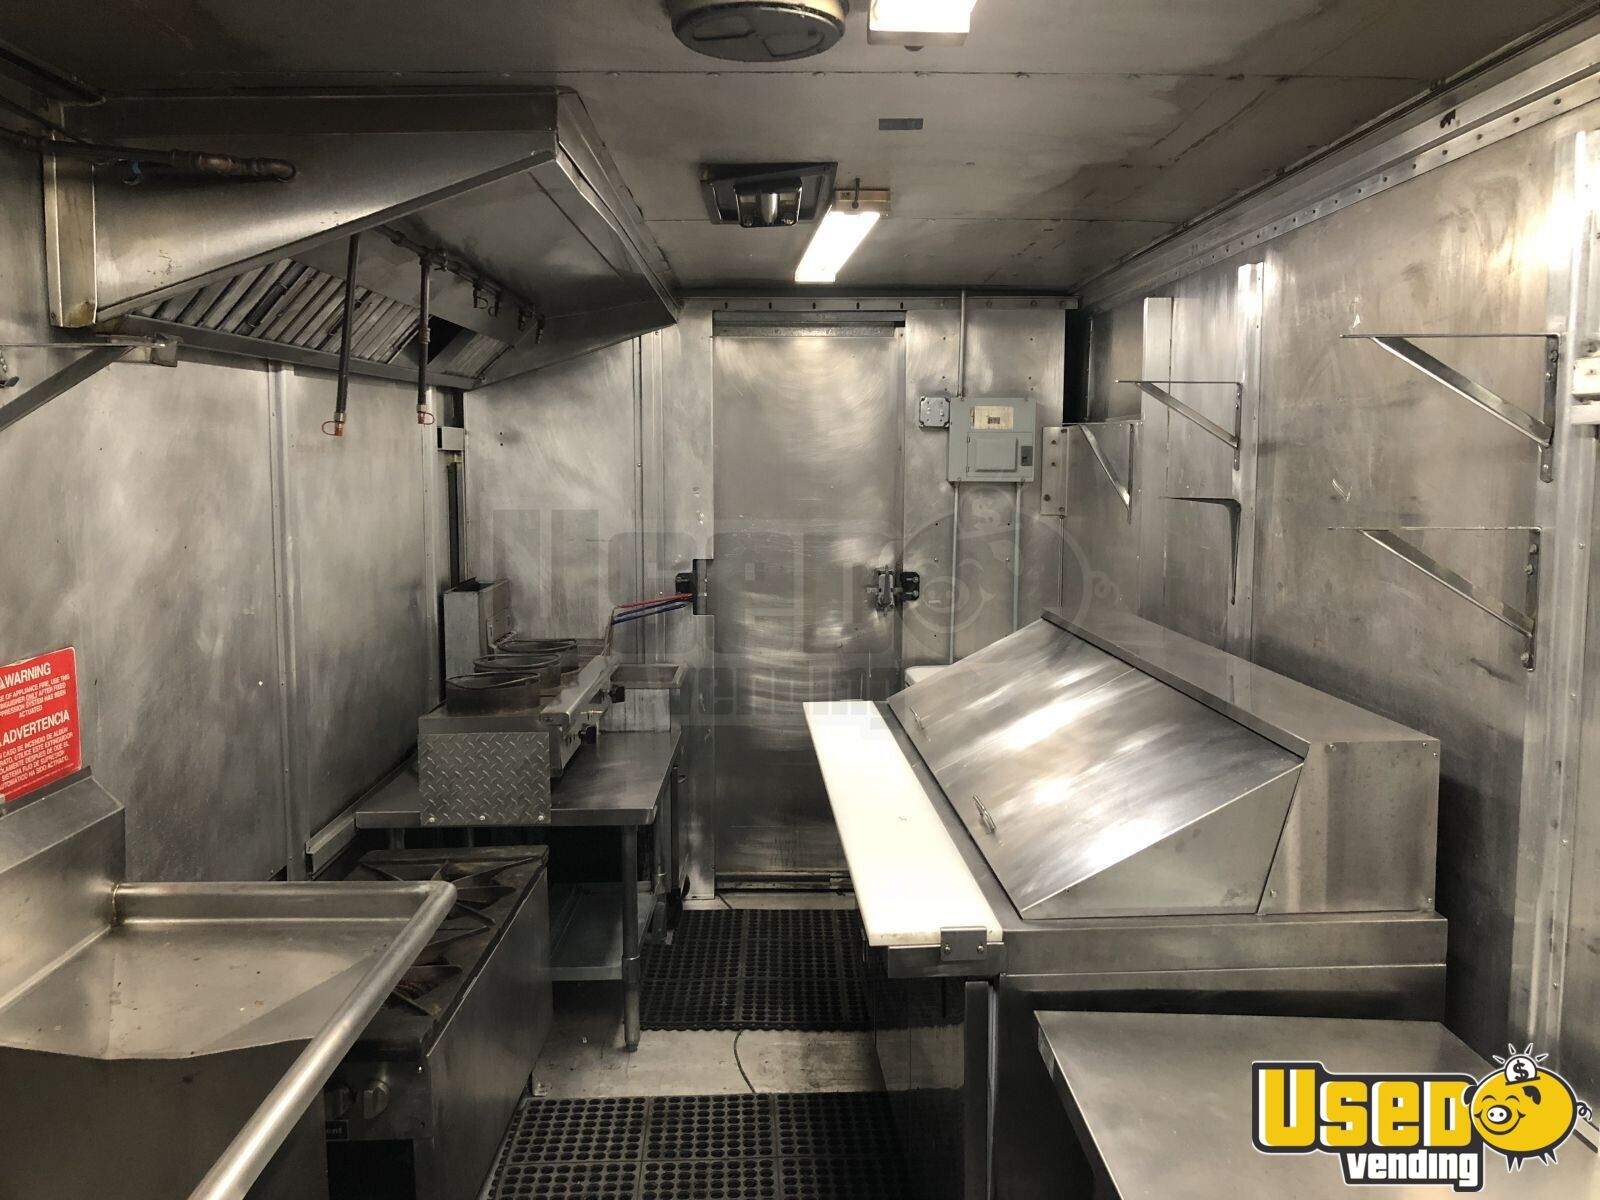 P-42 Workhorse Mobile Kitchen Food Truck for Sale in Michigan - 7